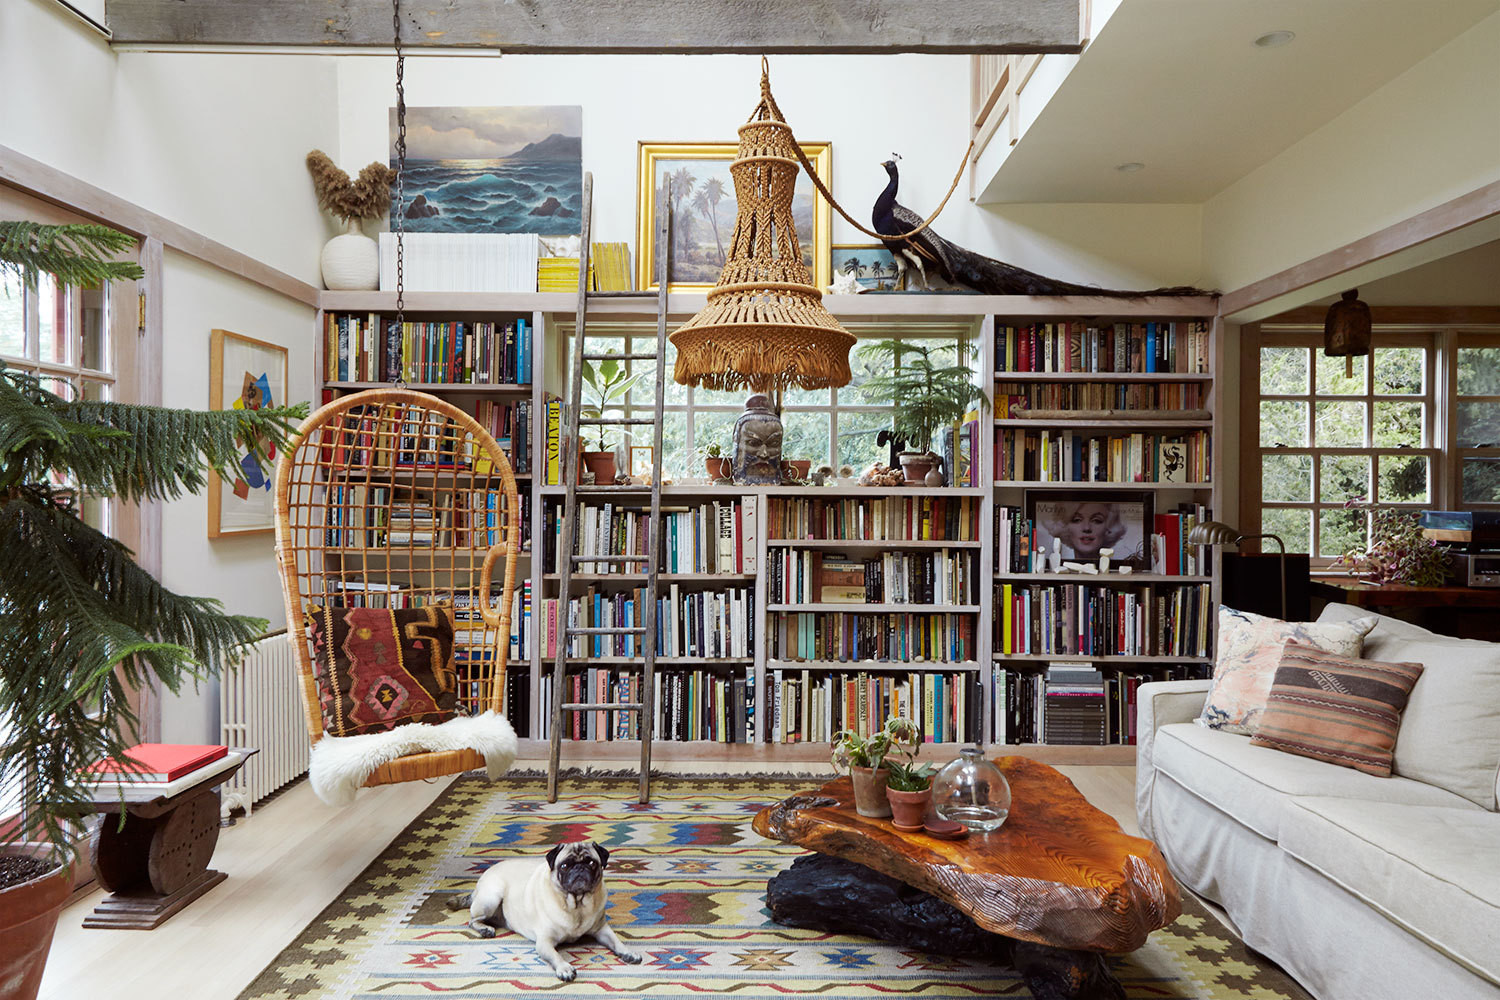 The couple's dog, Ali Baba, sprawls on a vintage rug in the book-lined living room.